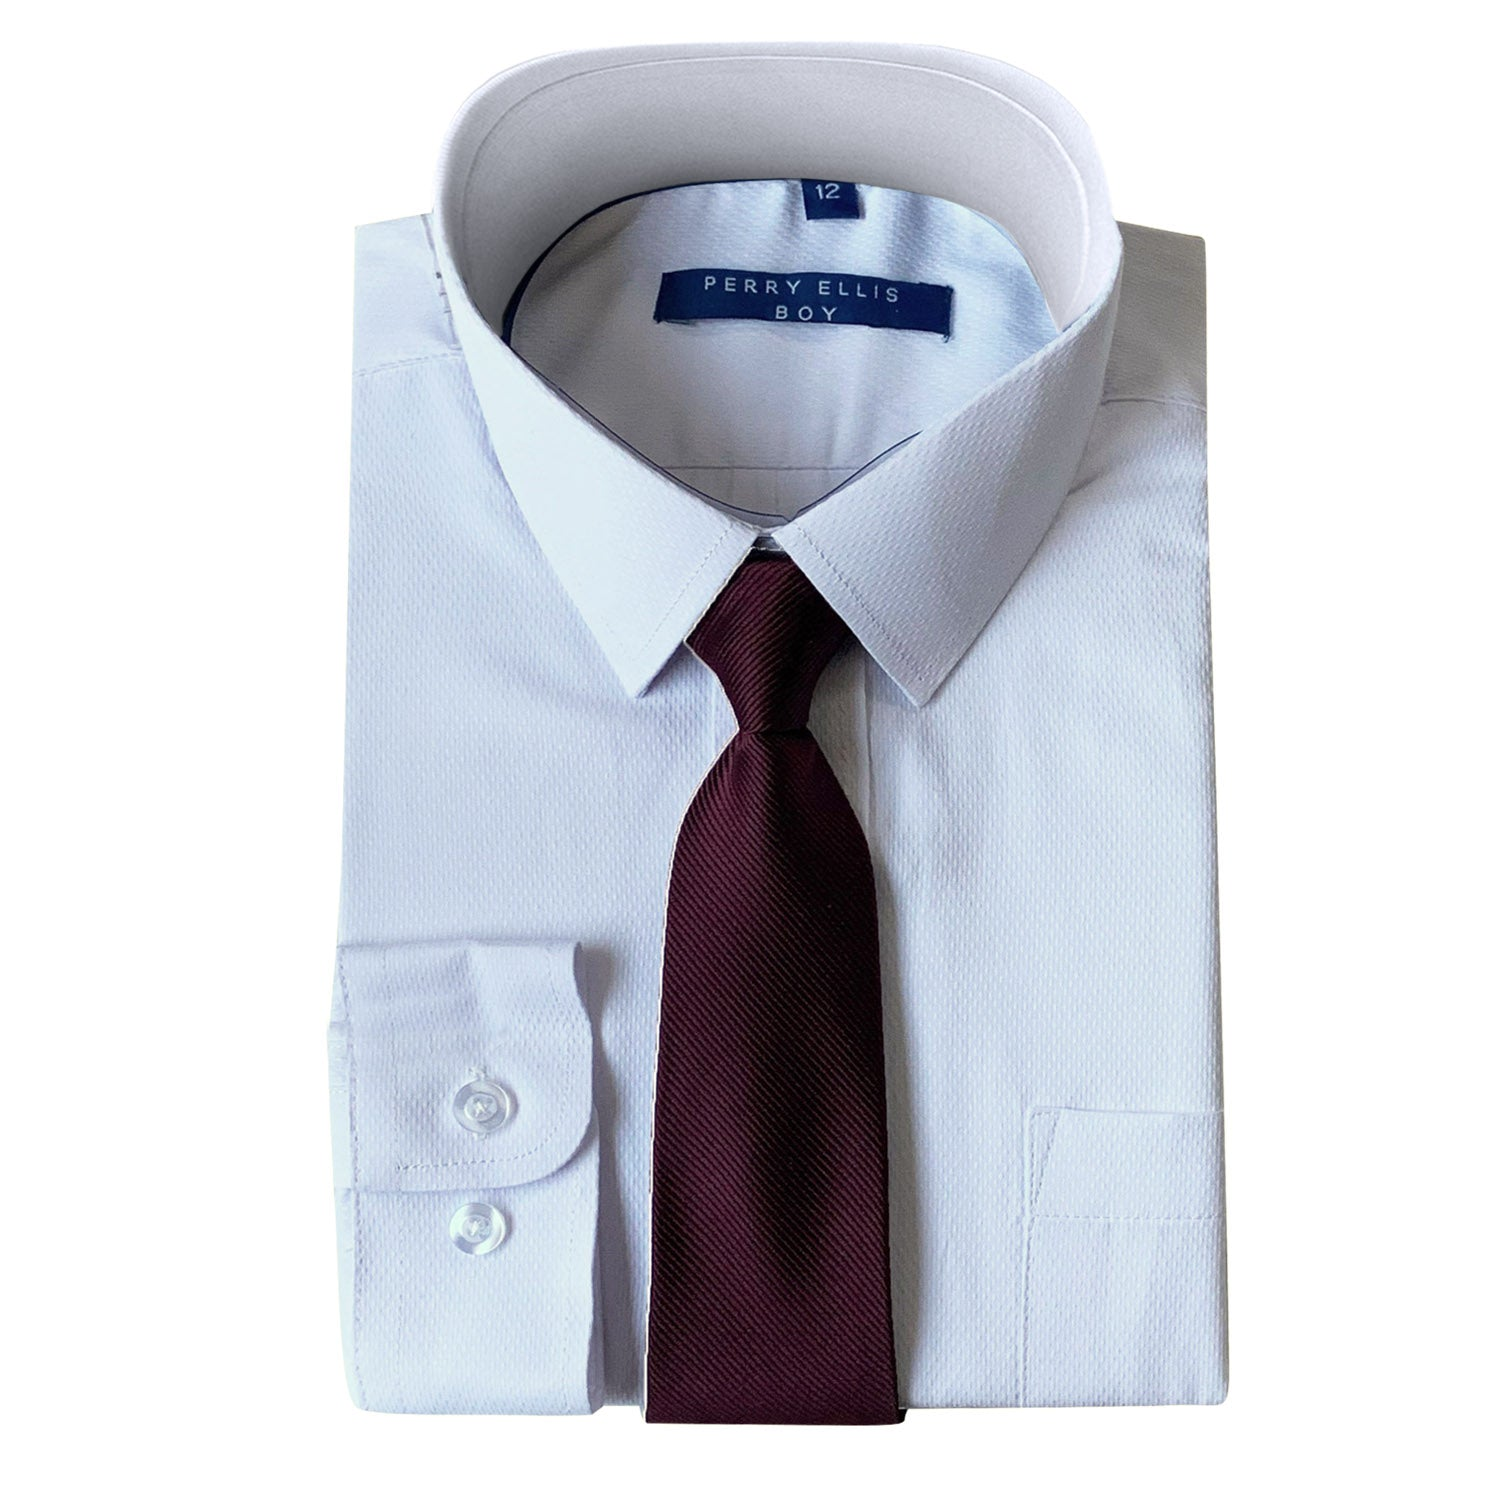 Perry Ellis Boys Dress Shirts w Burgundy Tie Solid Shirts w Colored Tie